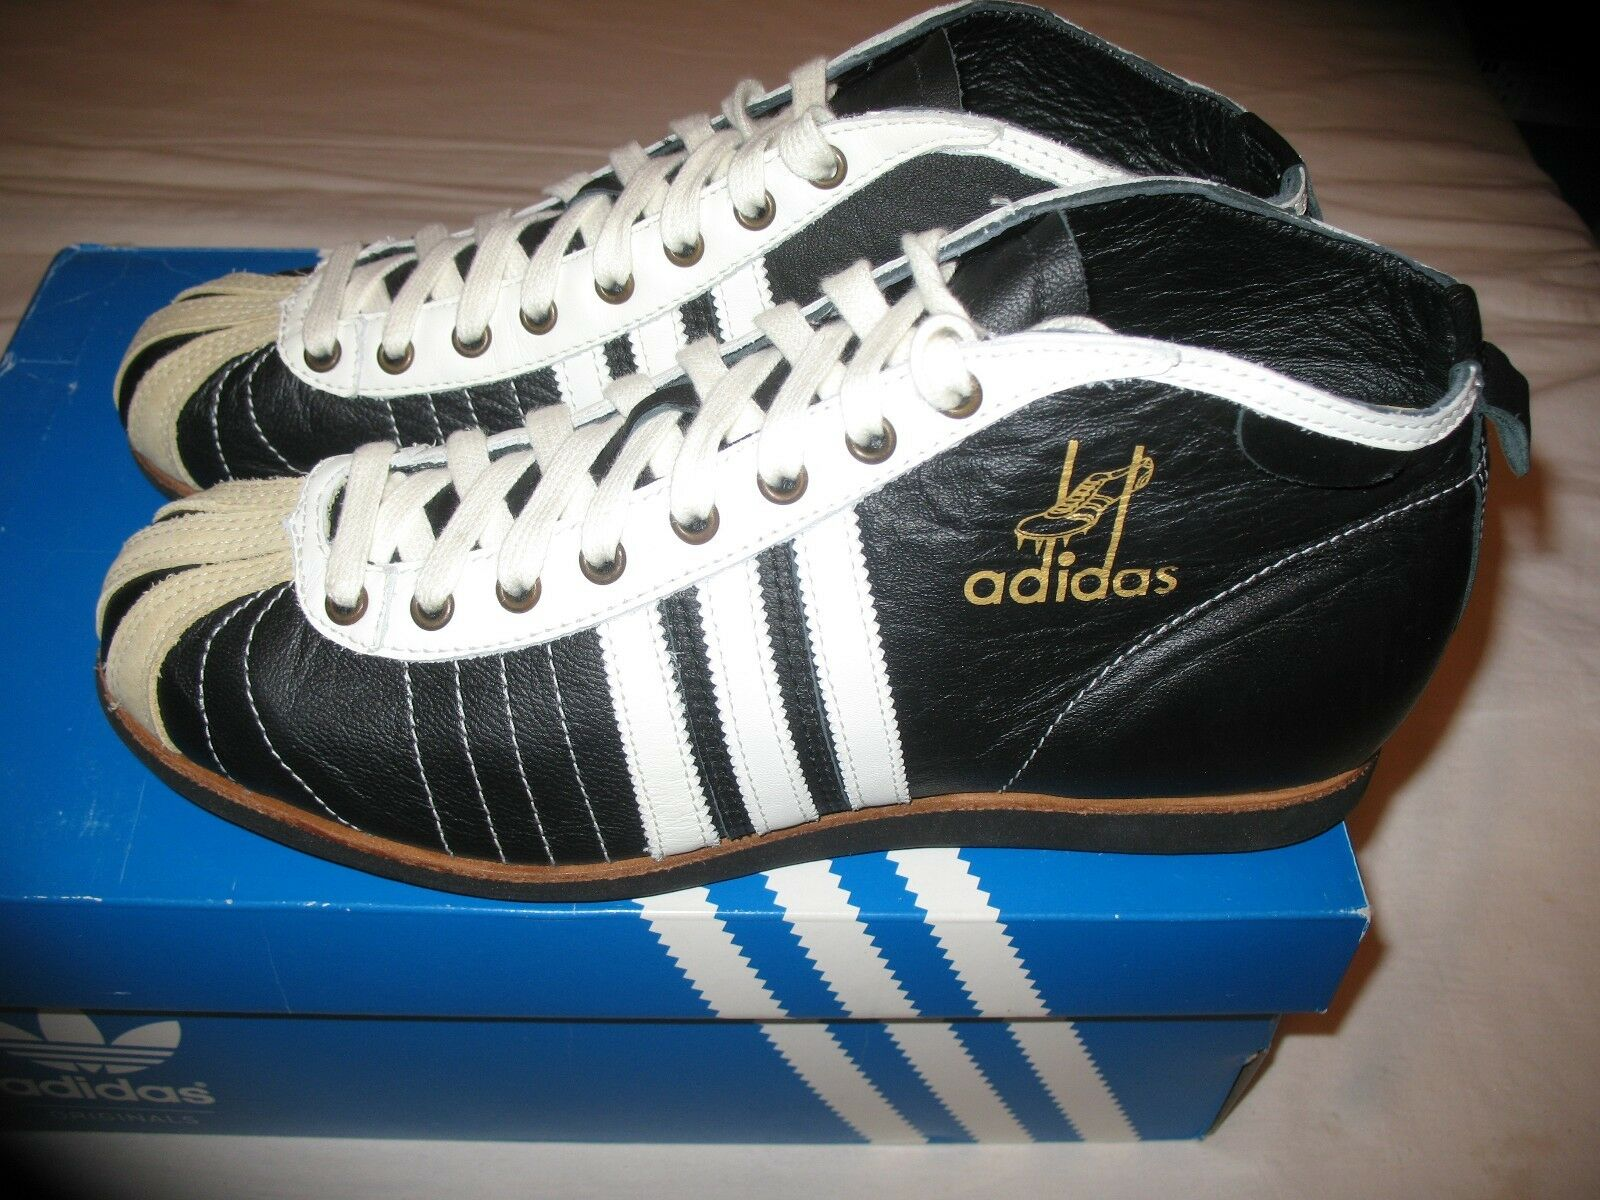 NEW LIMITED ADIDAS 54 BOOTS US 8.5 VERY RARE NO DUBLIN KOLN BERLIN 465098